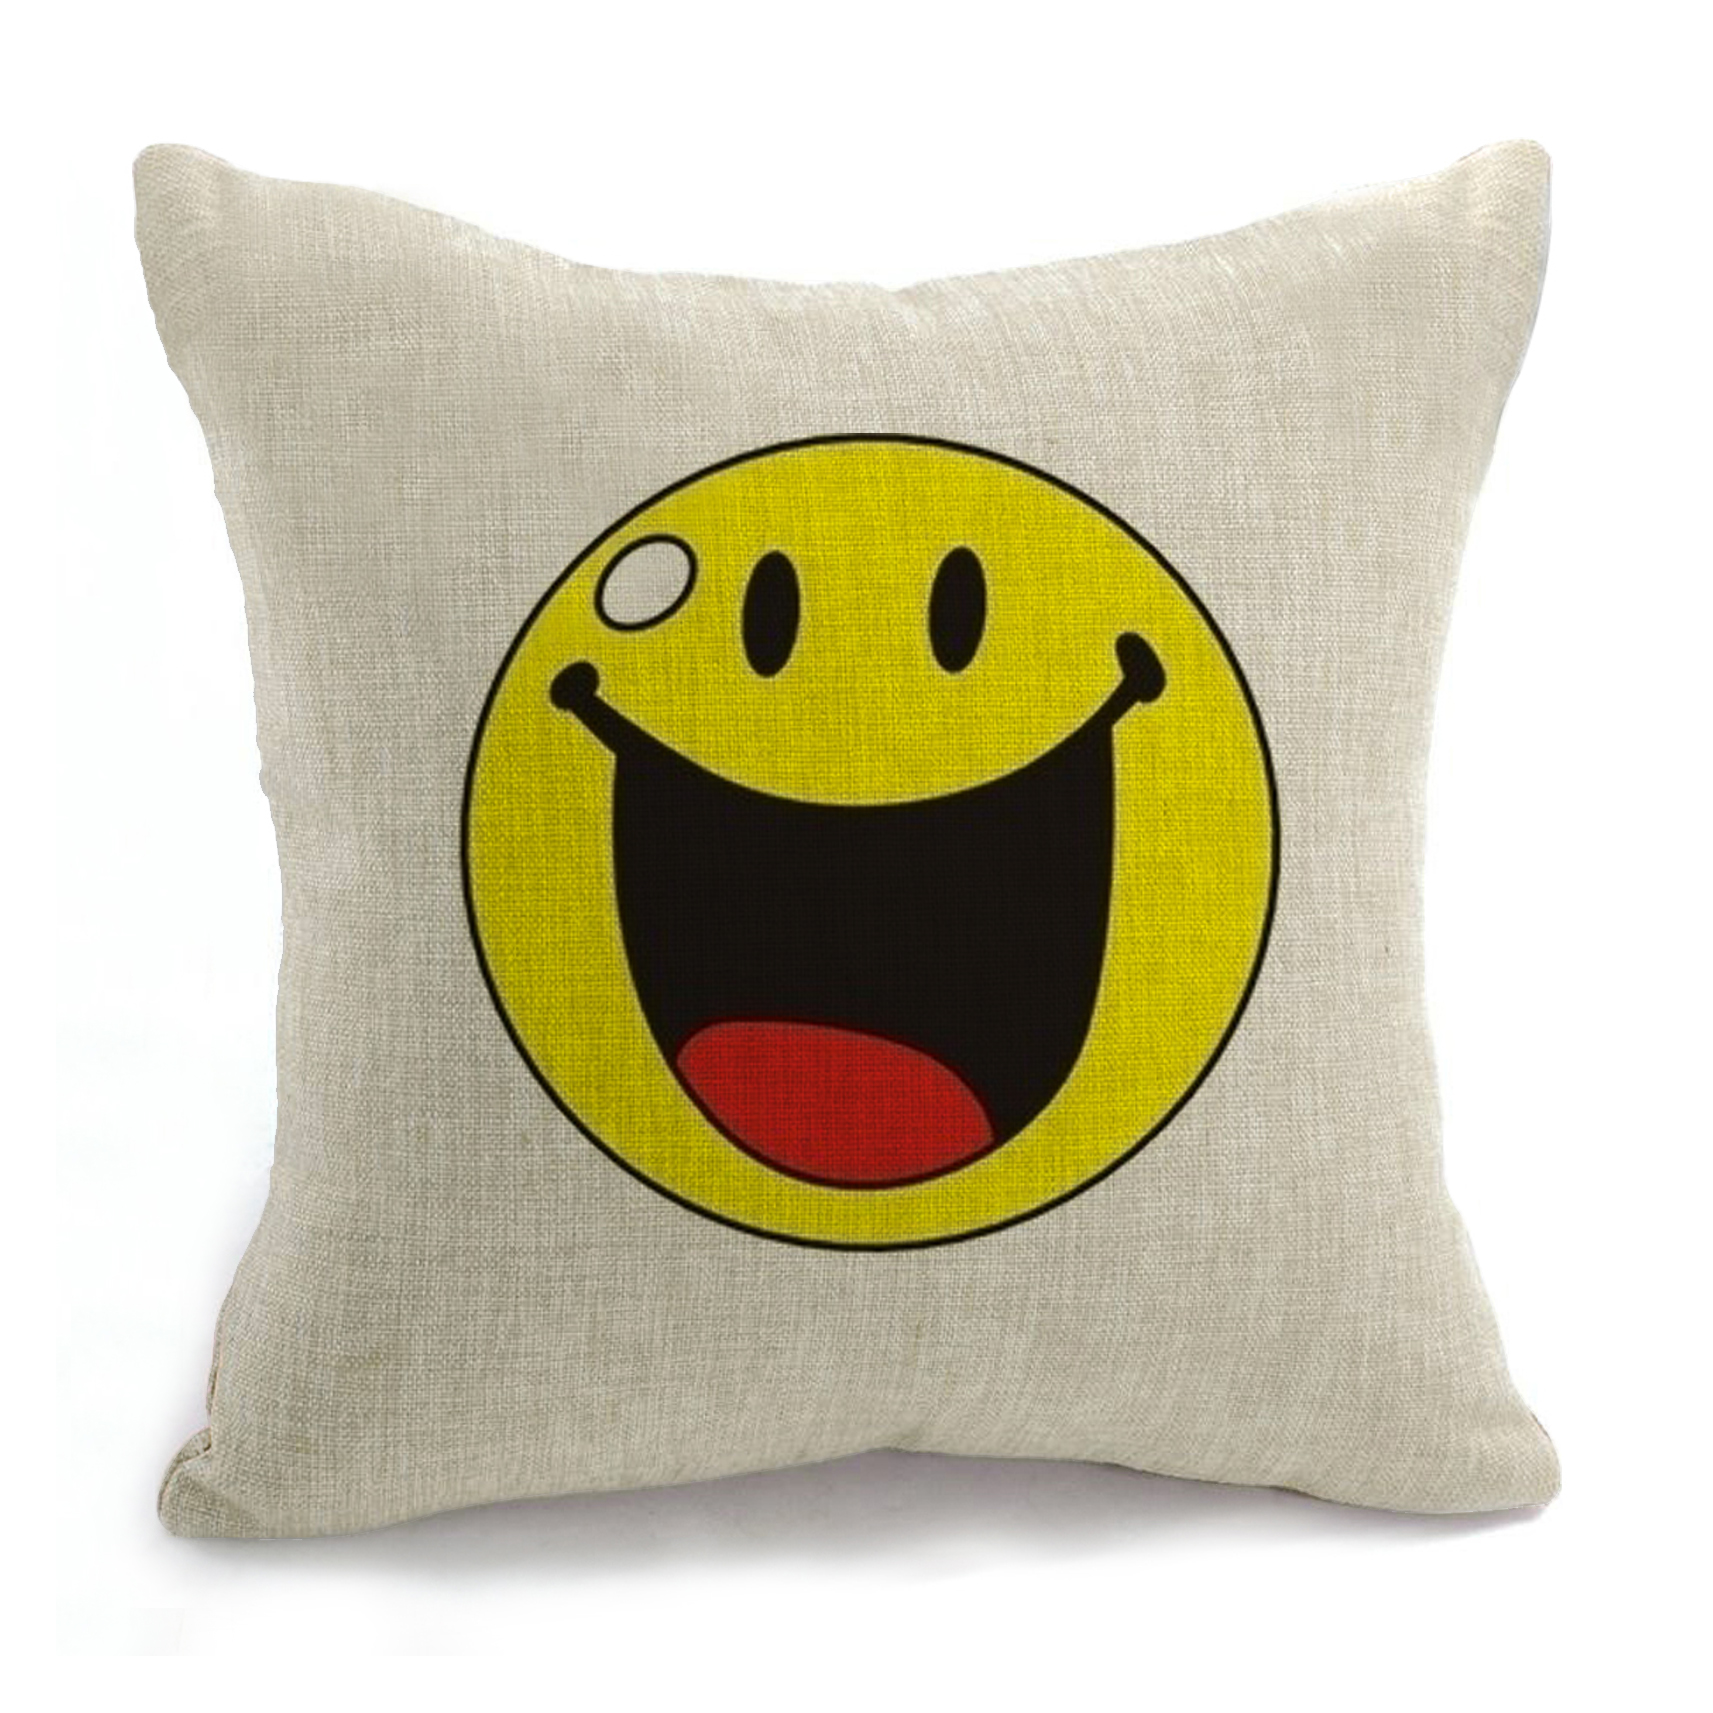 Scandinavian Smiley Coussin 18 X 18 Smile Decorative Emoji Pillow Living Room Sofa Cushion Cuscini Cojines Decorativos Almofadas